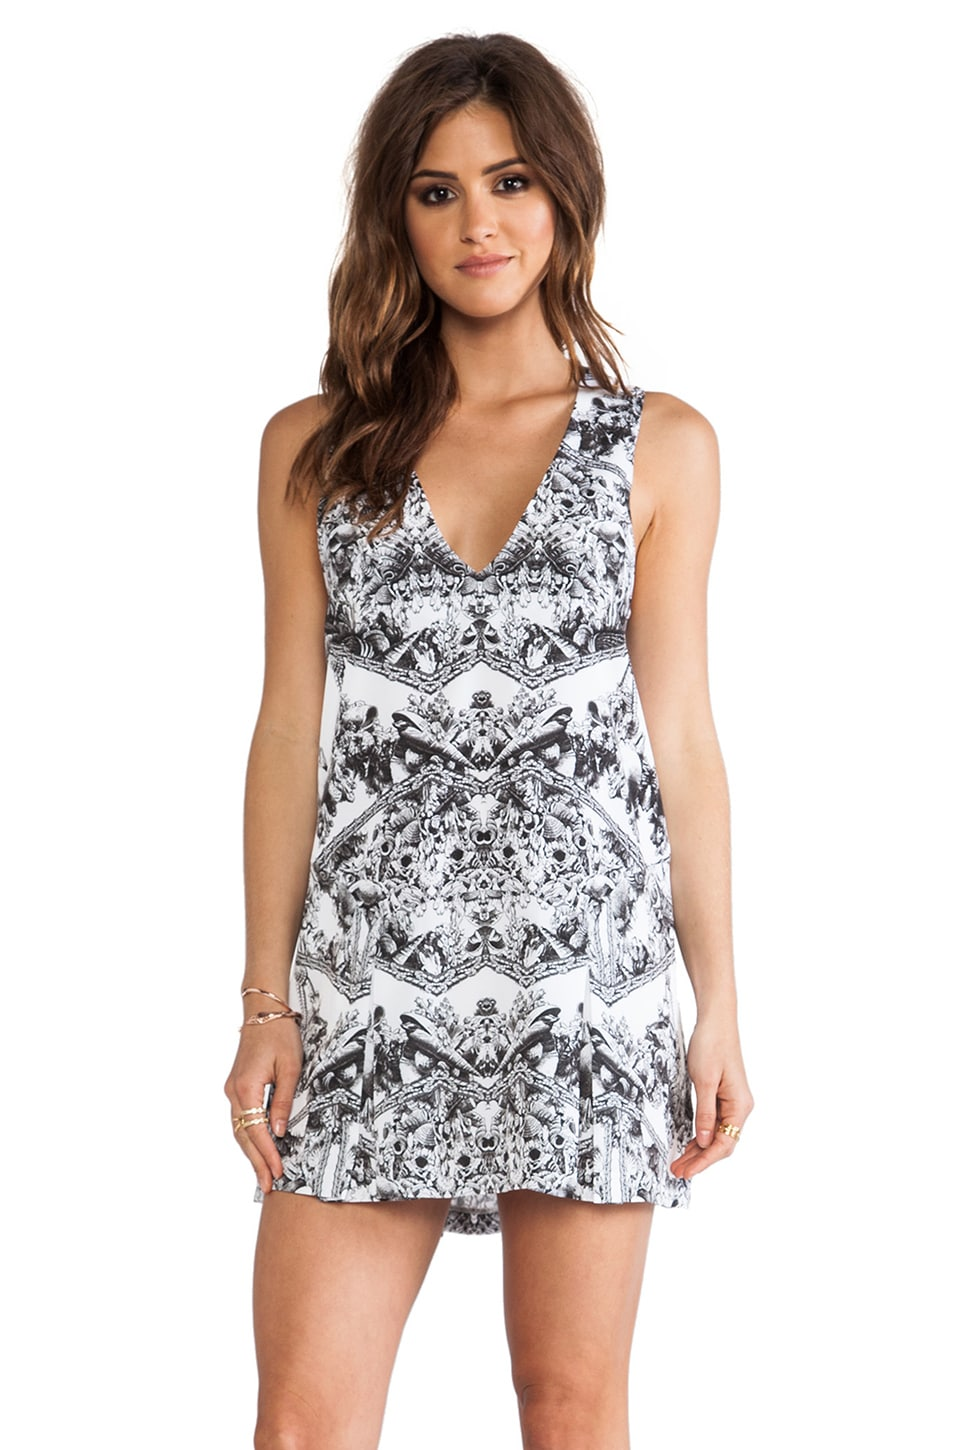 Finders Keepers Here Comes the Sun Dress in Shell Print